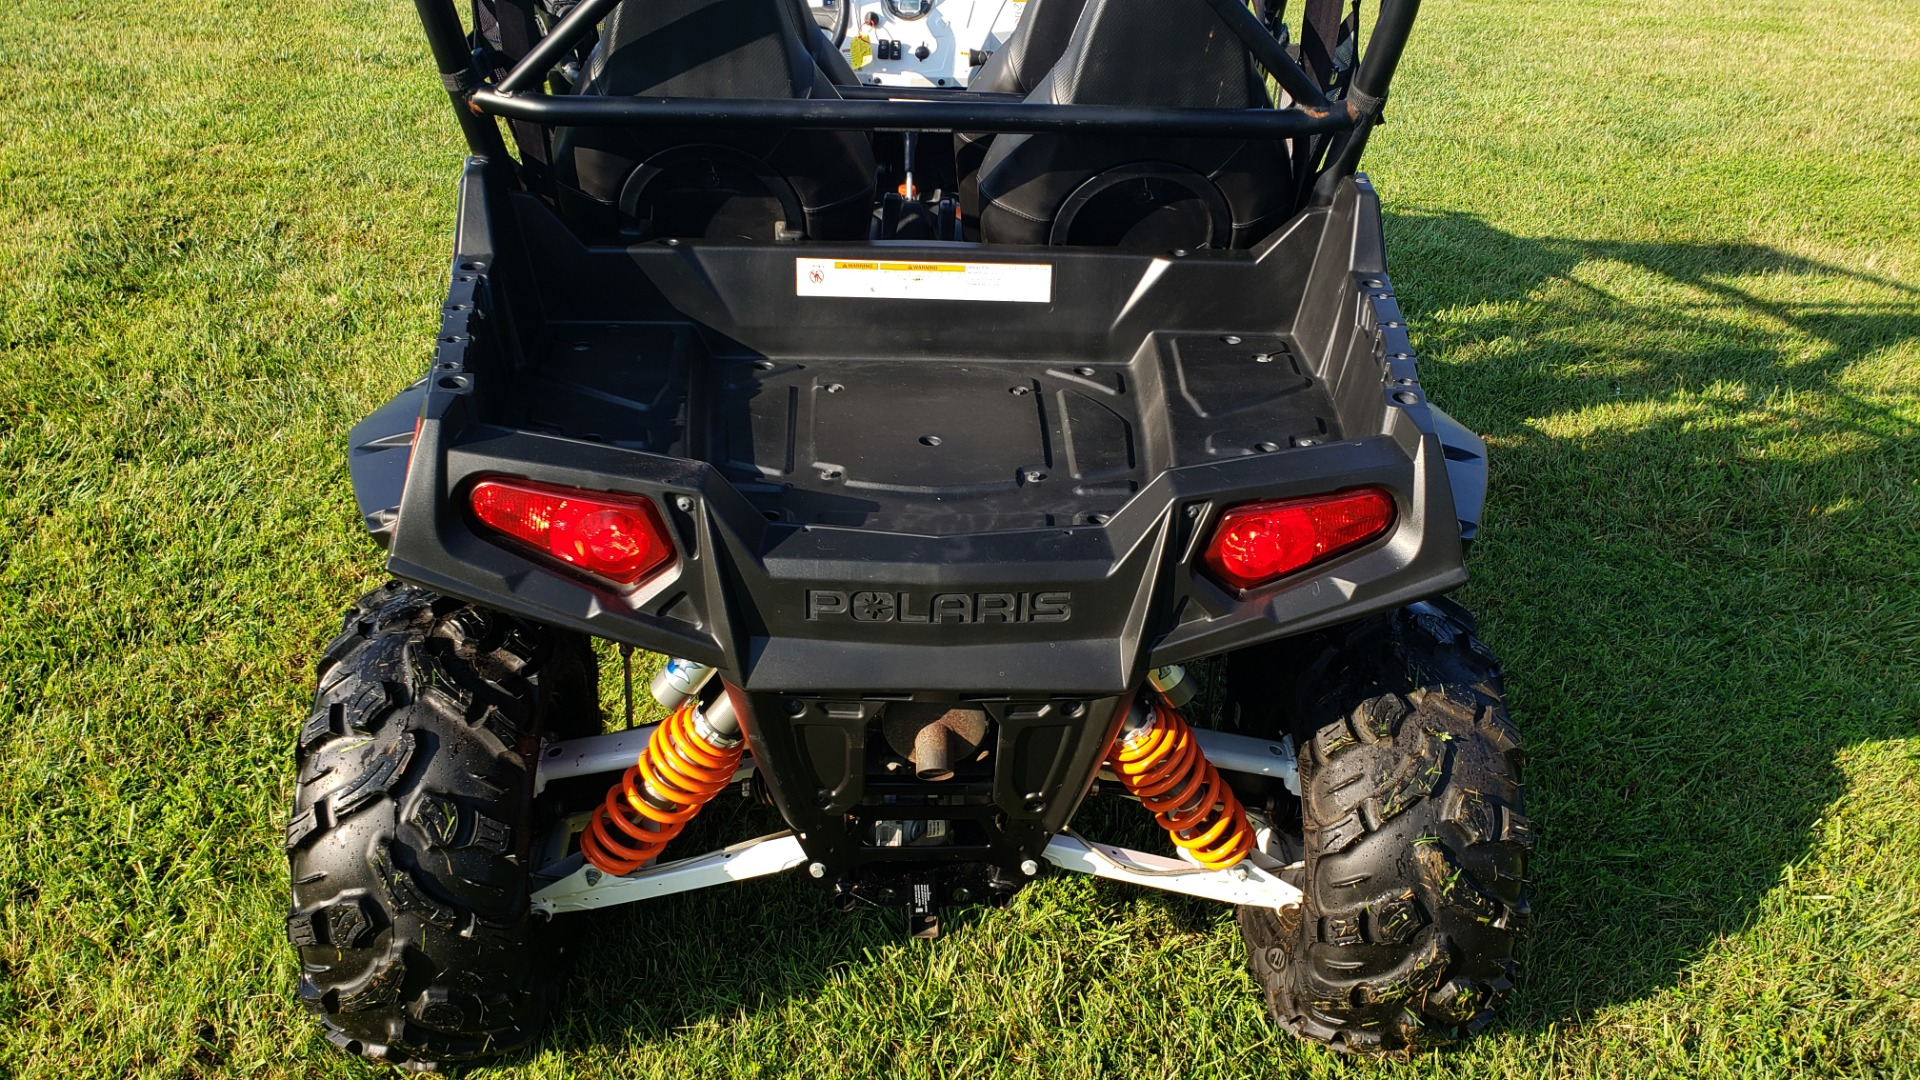 Used 2012 POLARIS RANGER RZR4 / HO 800 EFI / IPHONE CONNECT / SPEAKERS / NEW TIRES for sale Sold at Formula Imports in Charlotte NC 28227 18